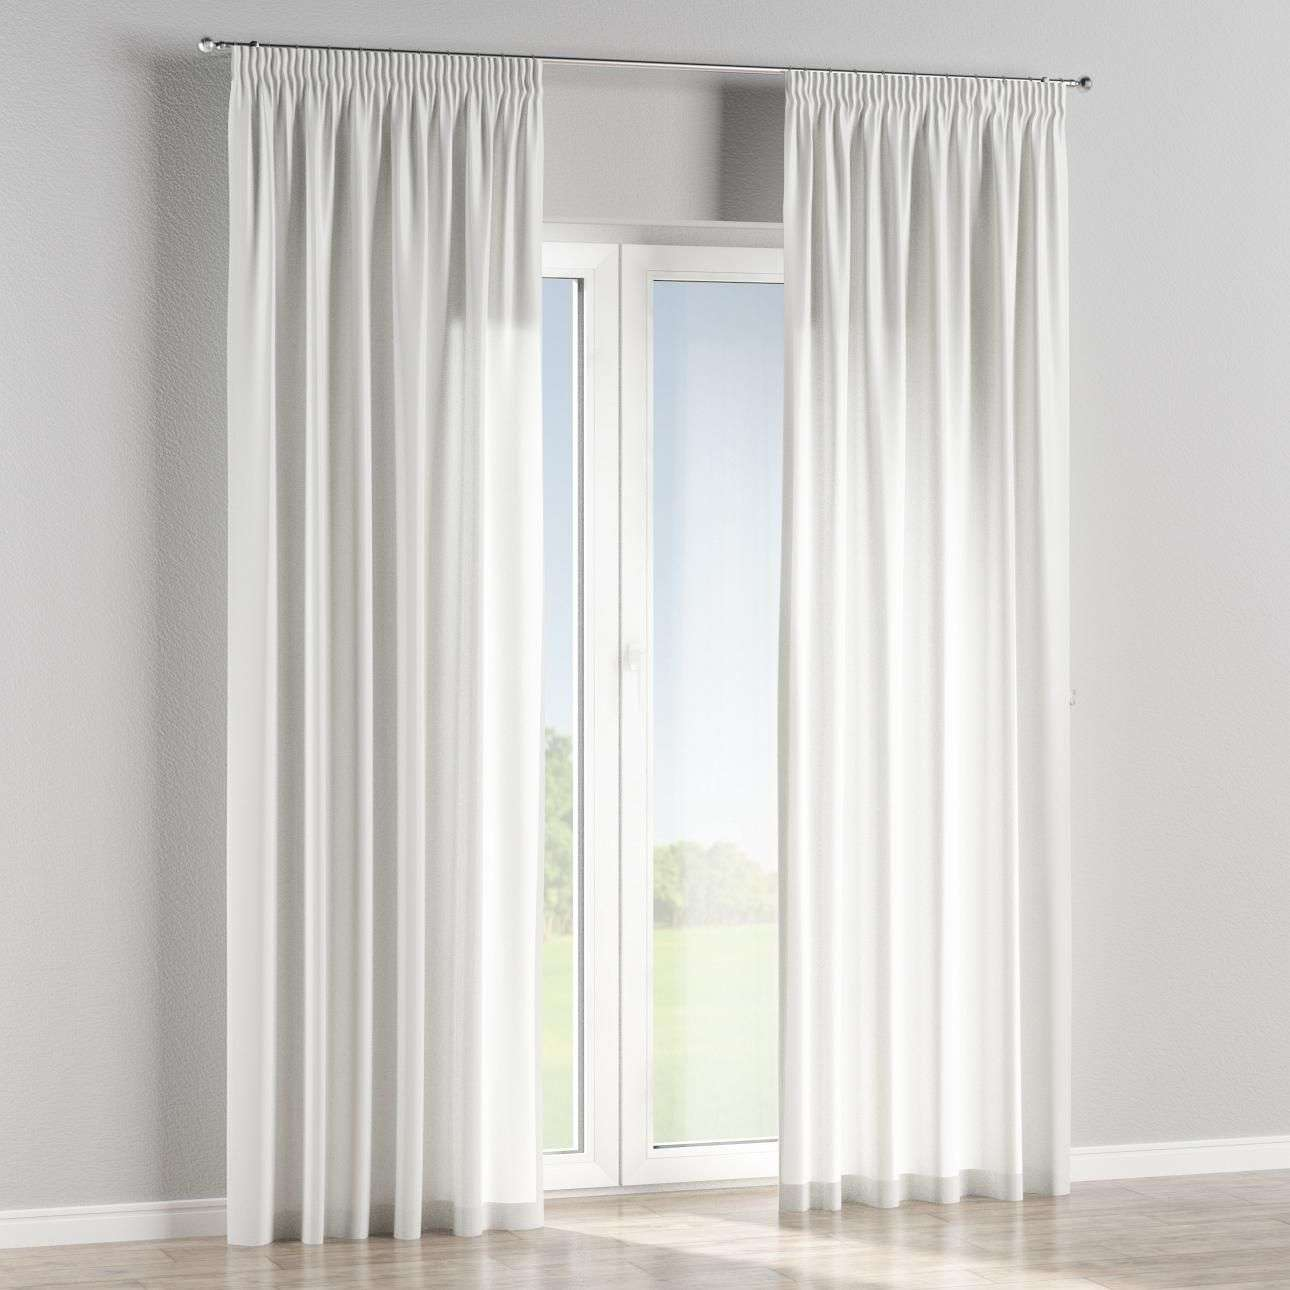 Pencil pleat curtains in collection Cardiff, fabric: 136-30